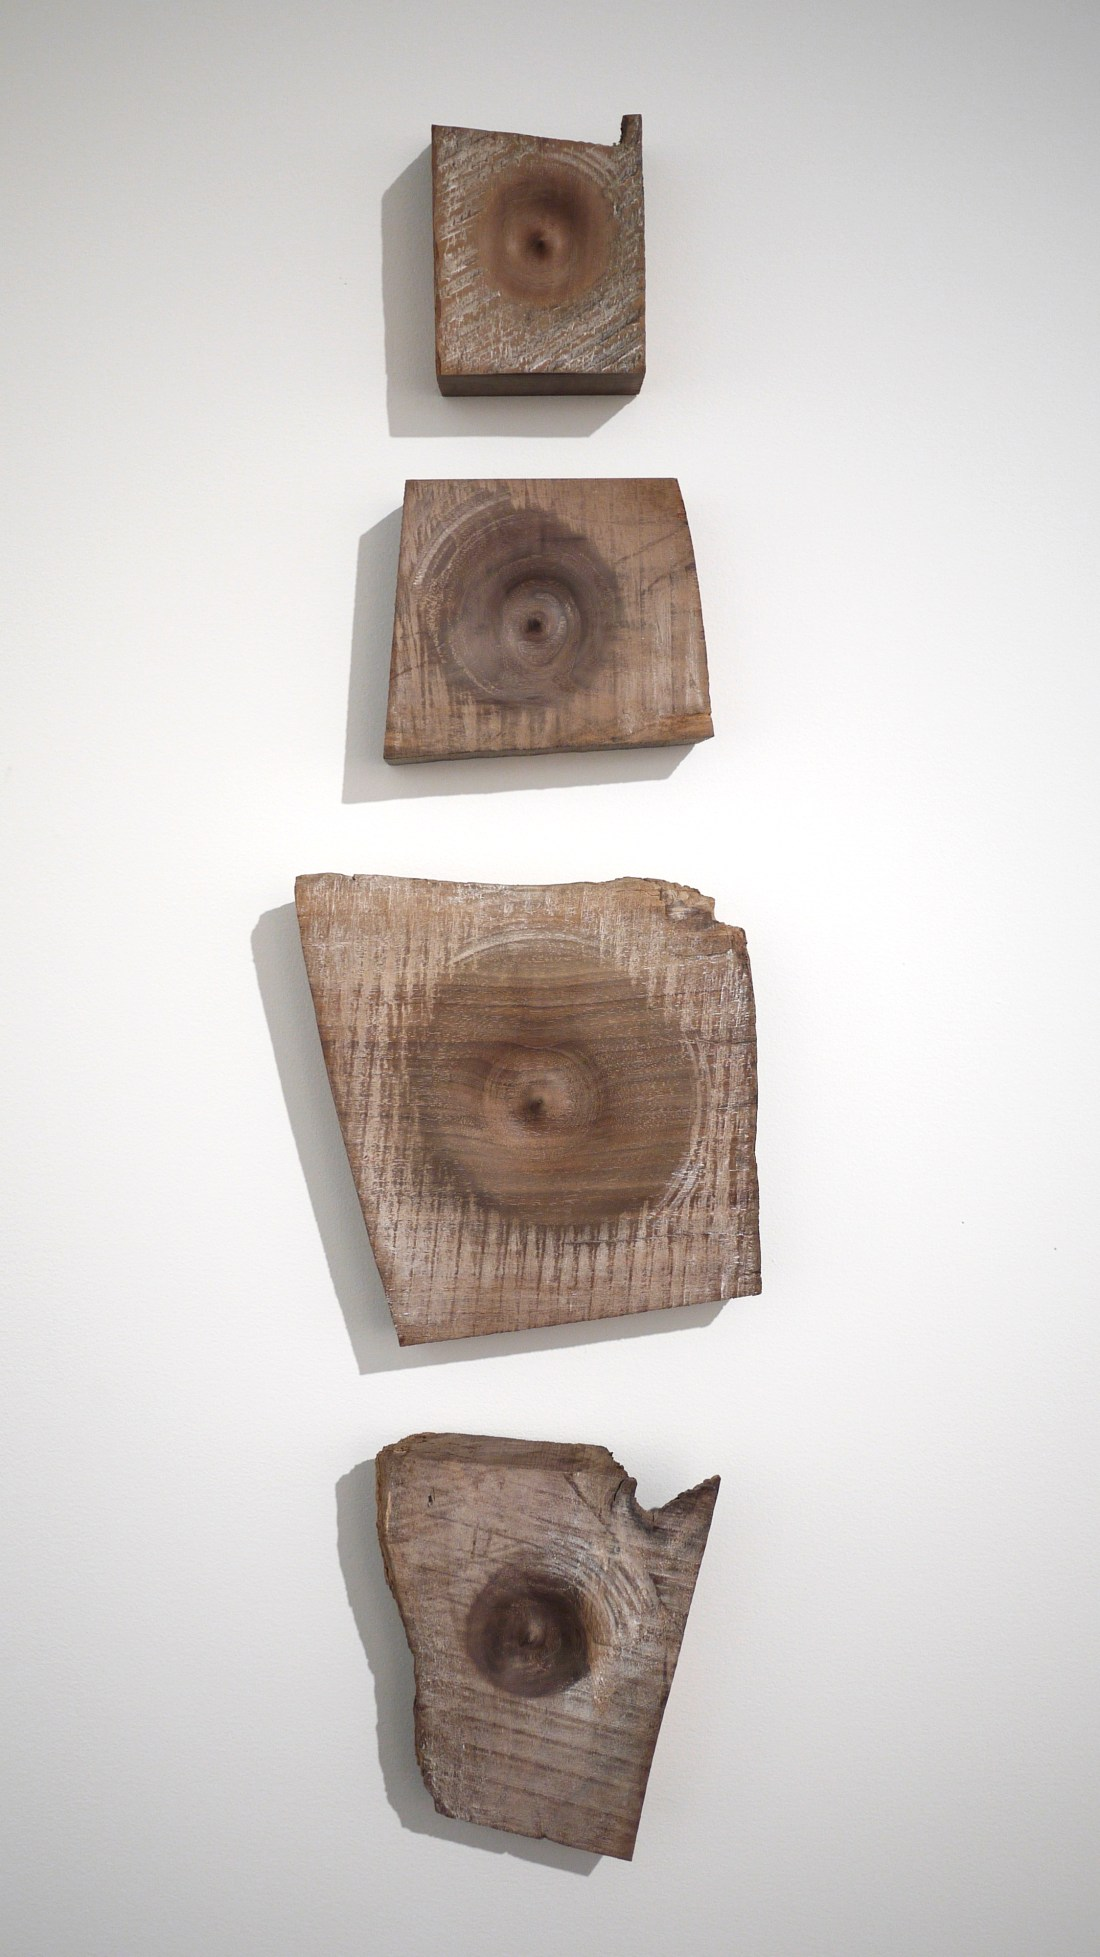 4 section wall art conceptual woodworking made of walnut and turned on lather